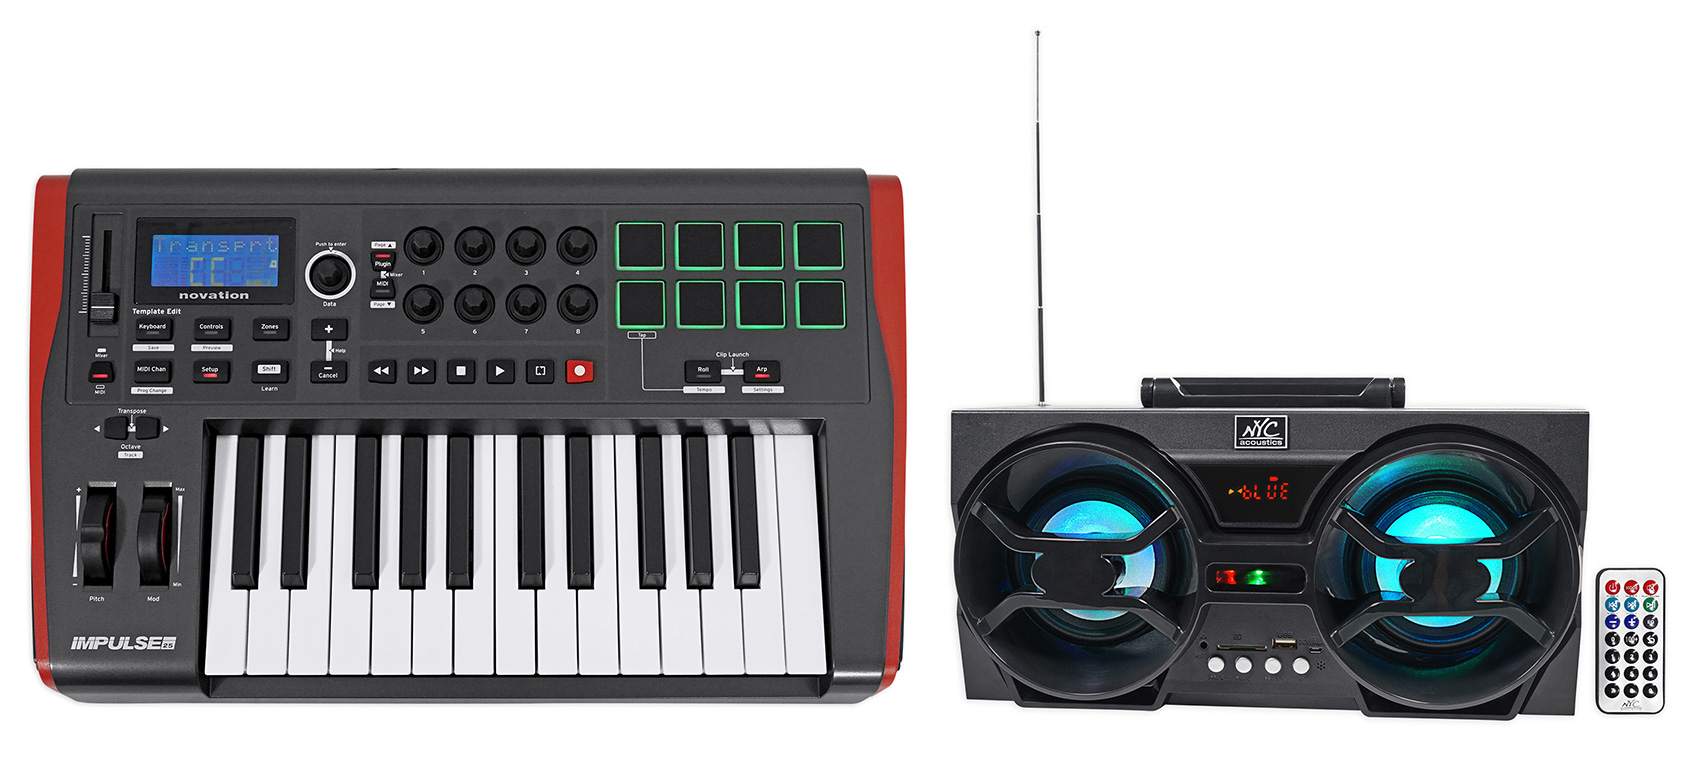 Novation IMPULSE 25 Ableton Live 25-Key MIDI USB Keyboard Controller + Boombox by Novation